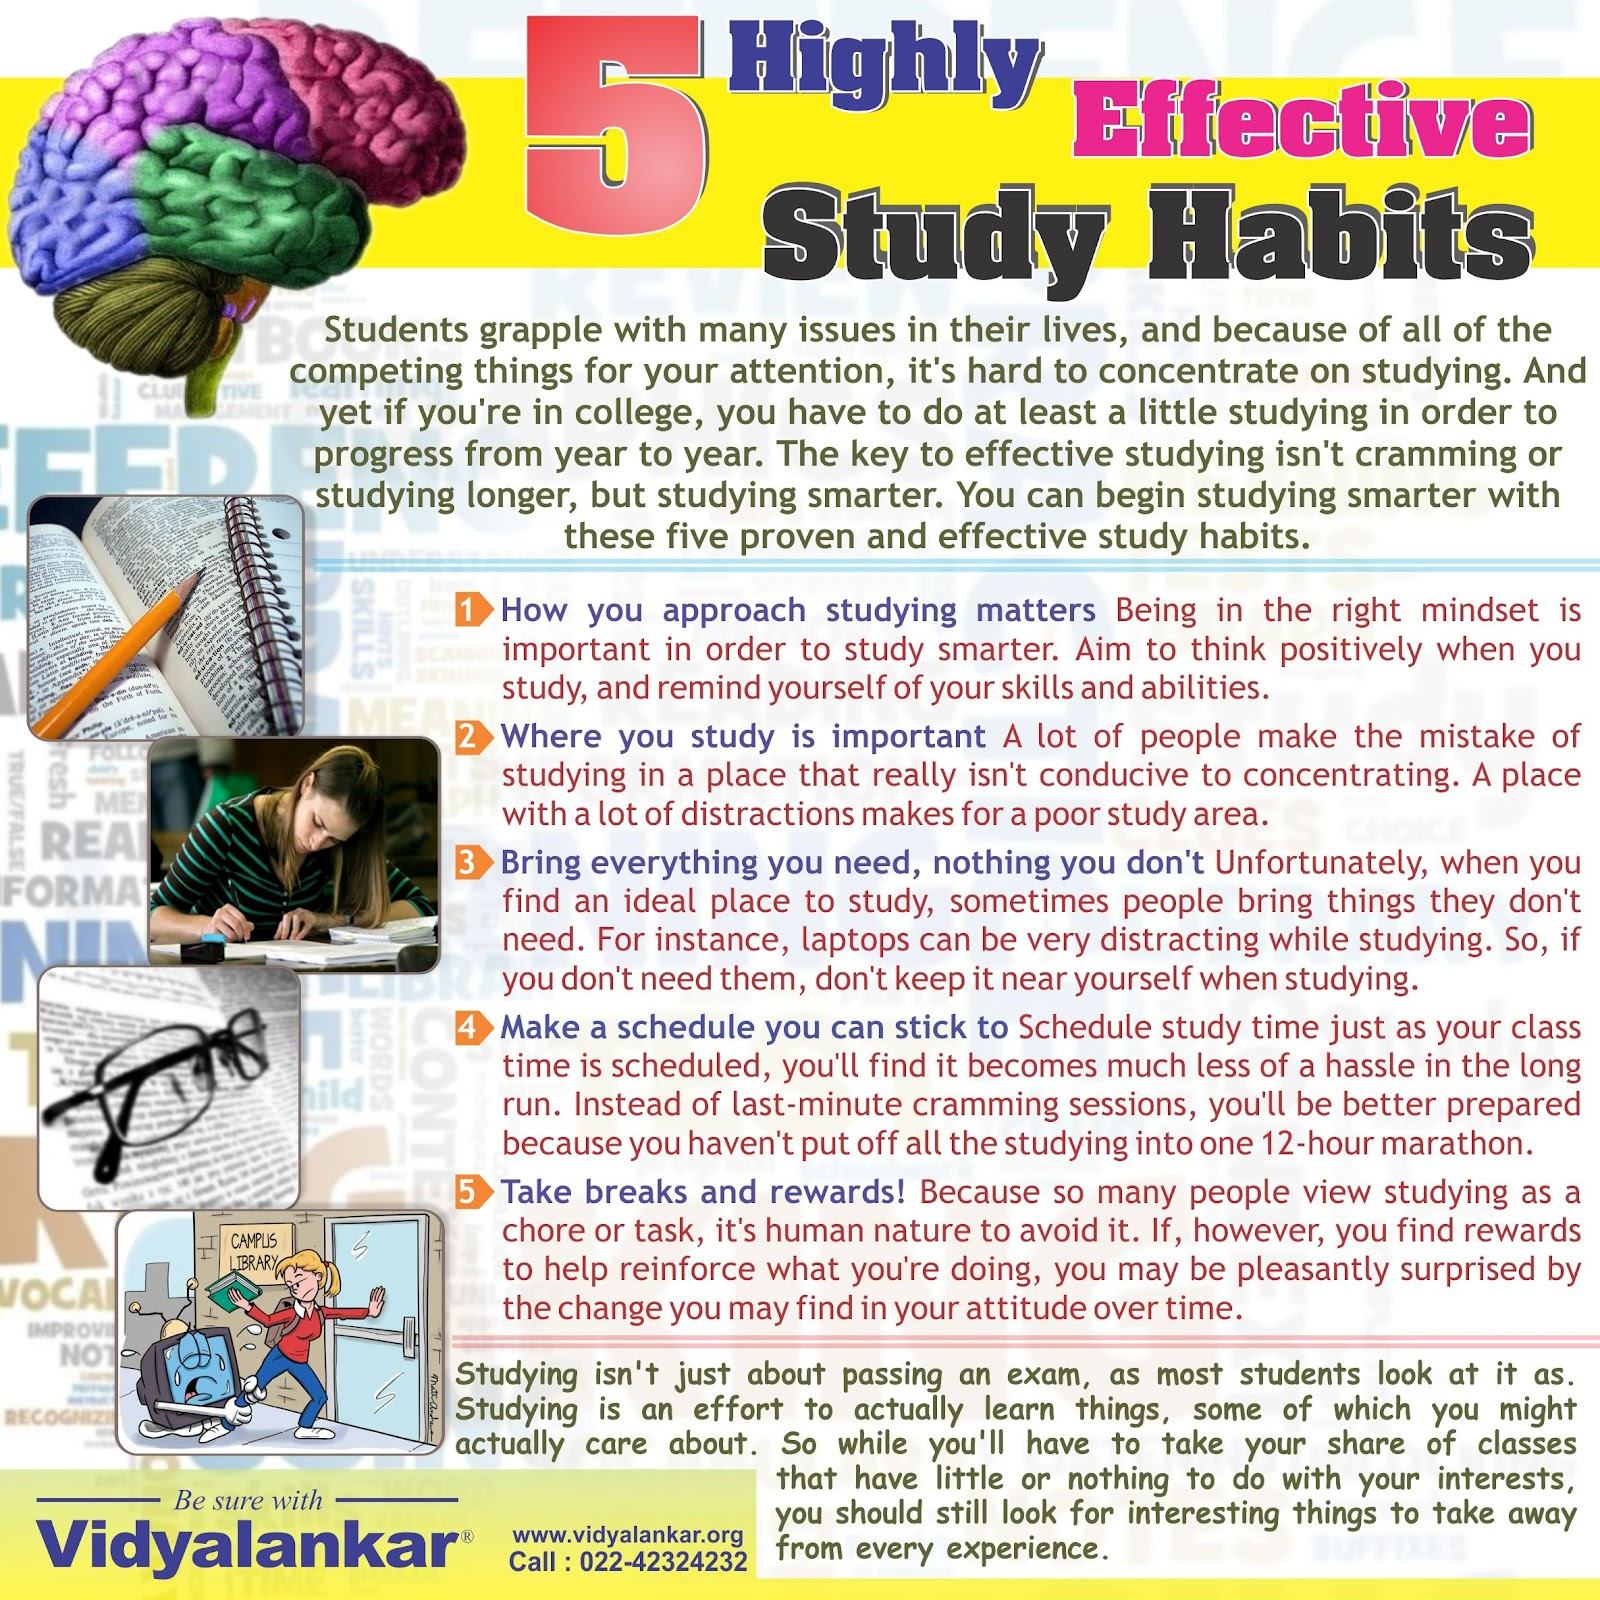 local studies in thesis about study habits Local studies according to muega (2003) the more accurately his or her study habits would be labeled as 'unhealthy' unhealthy study habits were operationally defined as low scores on amount of time per study session.